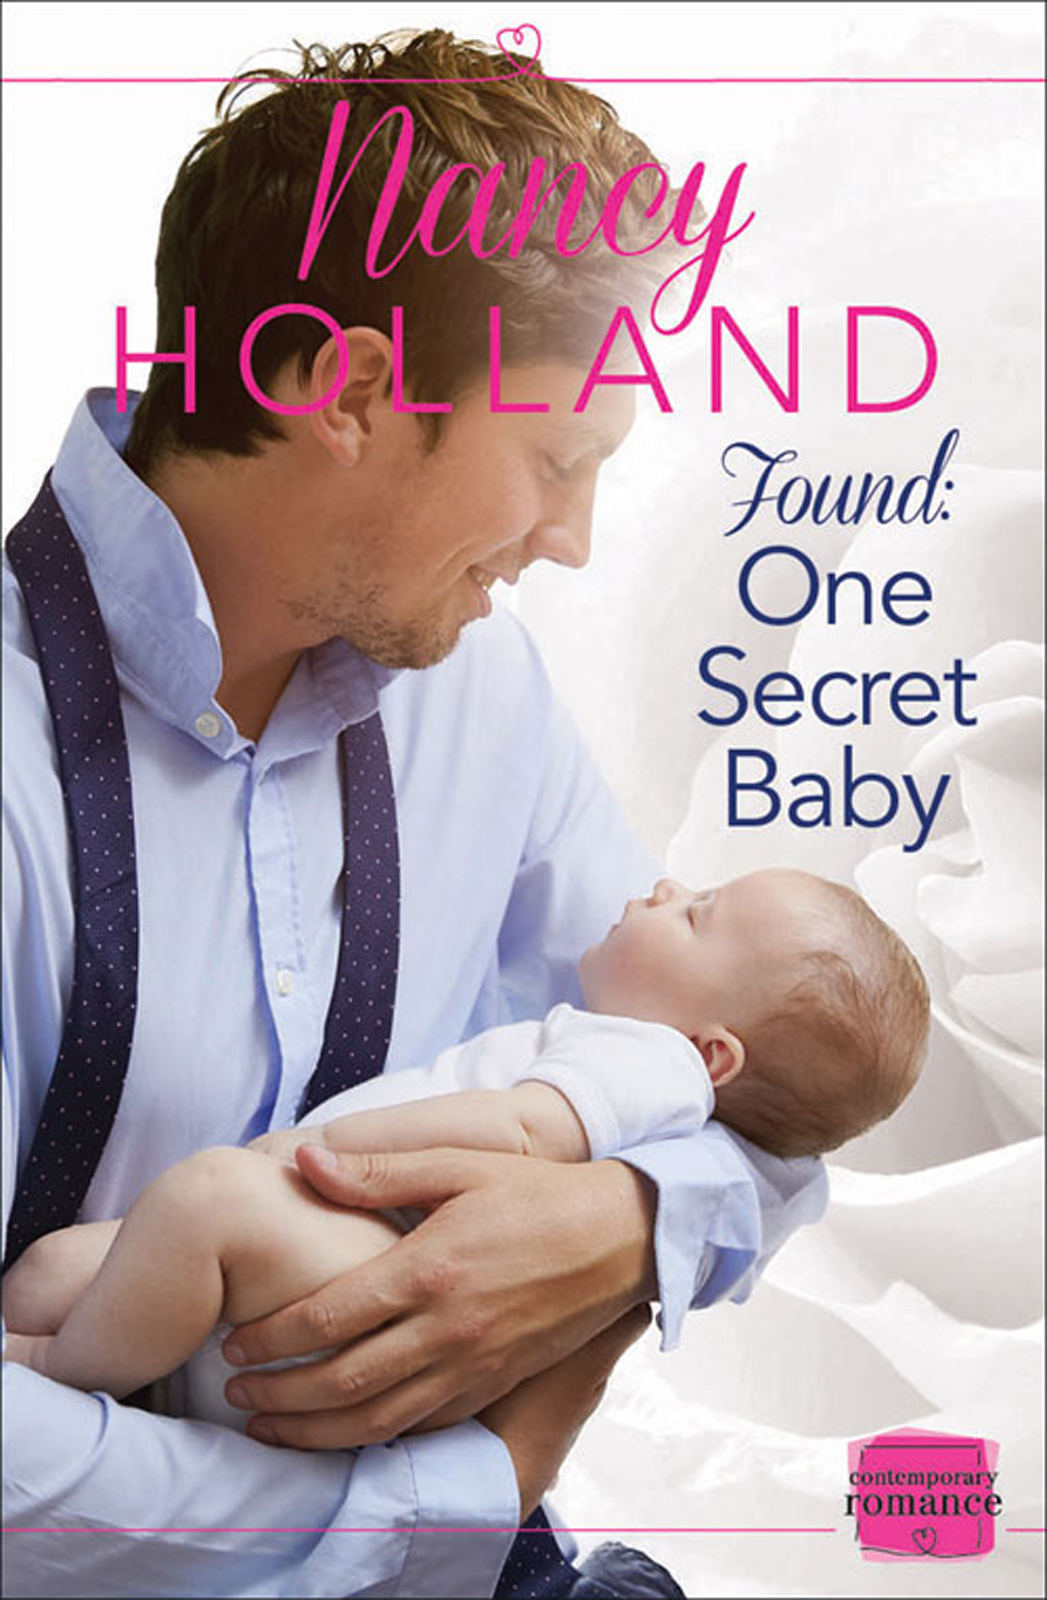 Nancy Holland Found: One Secret Baby carol marinelli secret sheikh secret baby